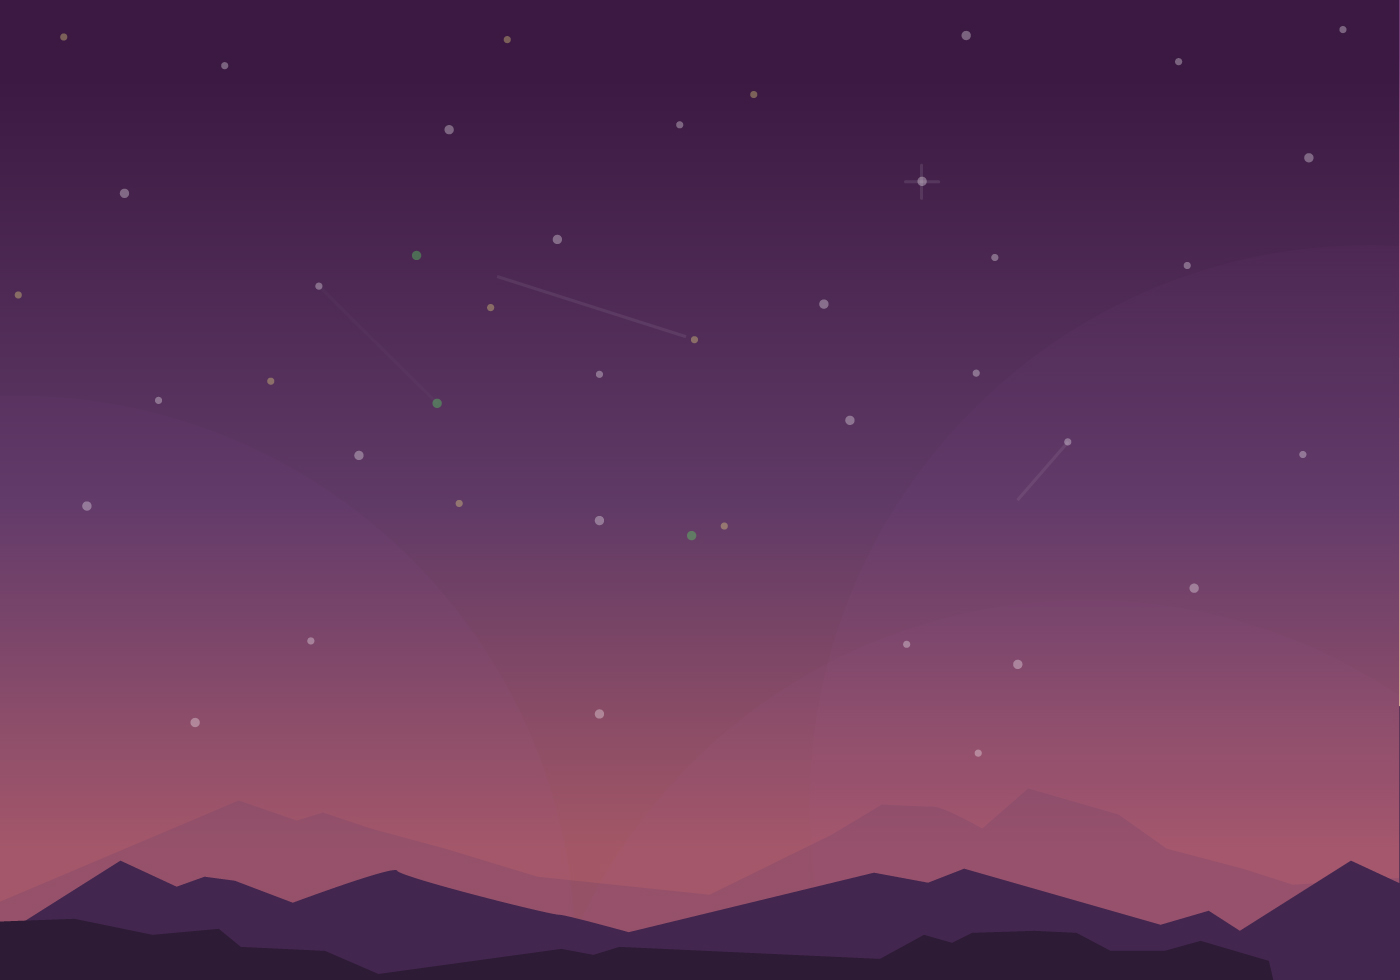 Milky Way Background Vector